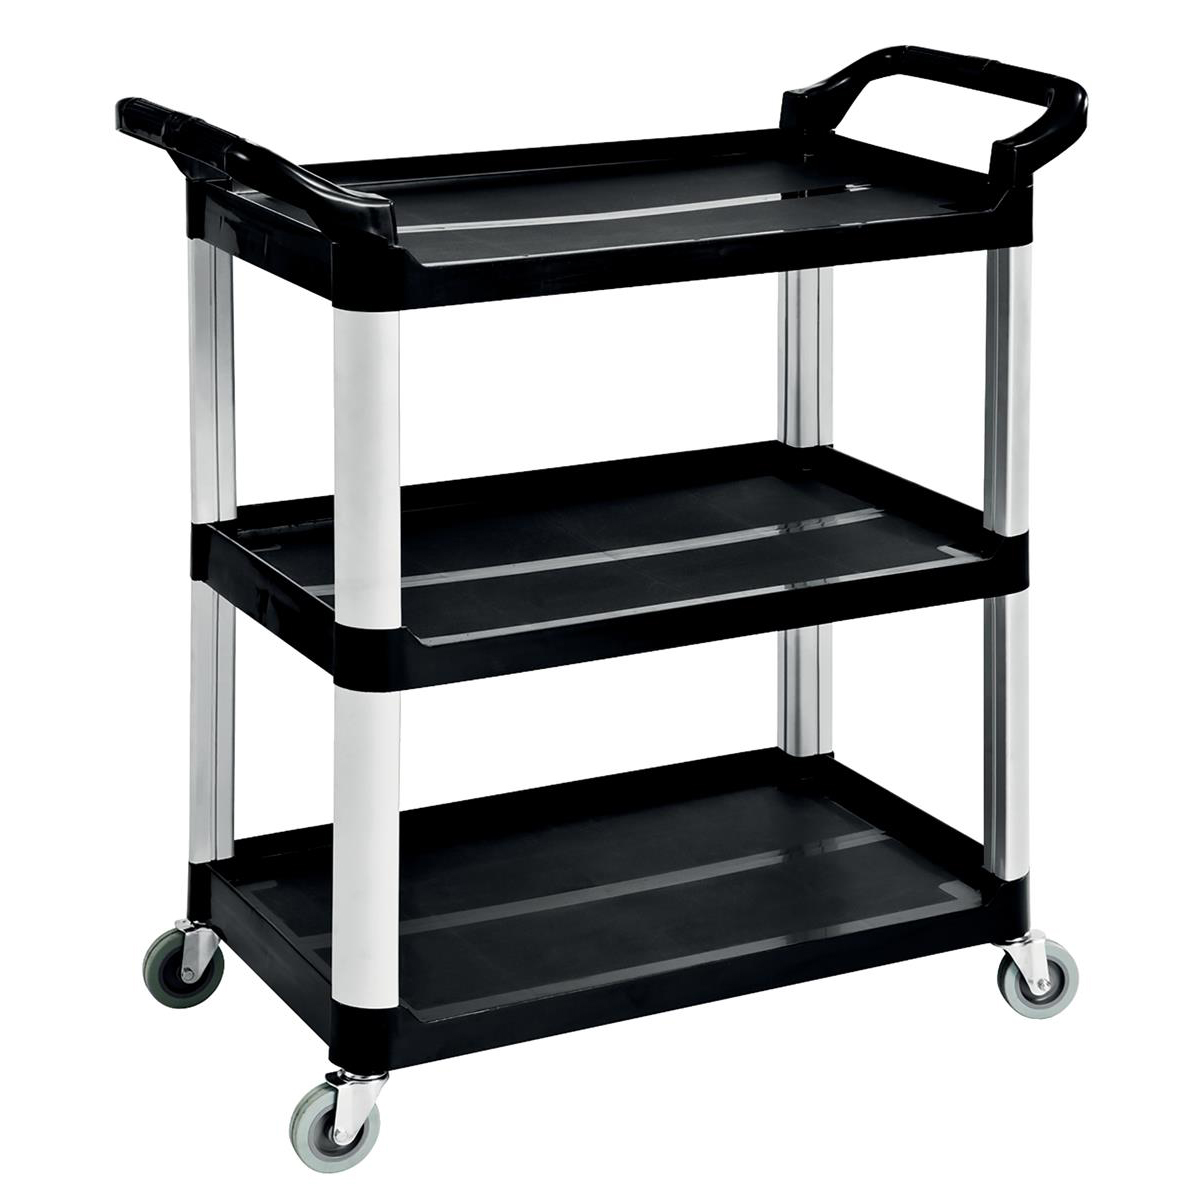 Image for 5 Star Facilities Utility Tray Trolley Standard 3 Shelf Capacity 150kg W460xD750xH980mm